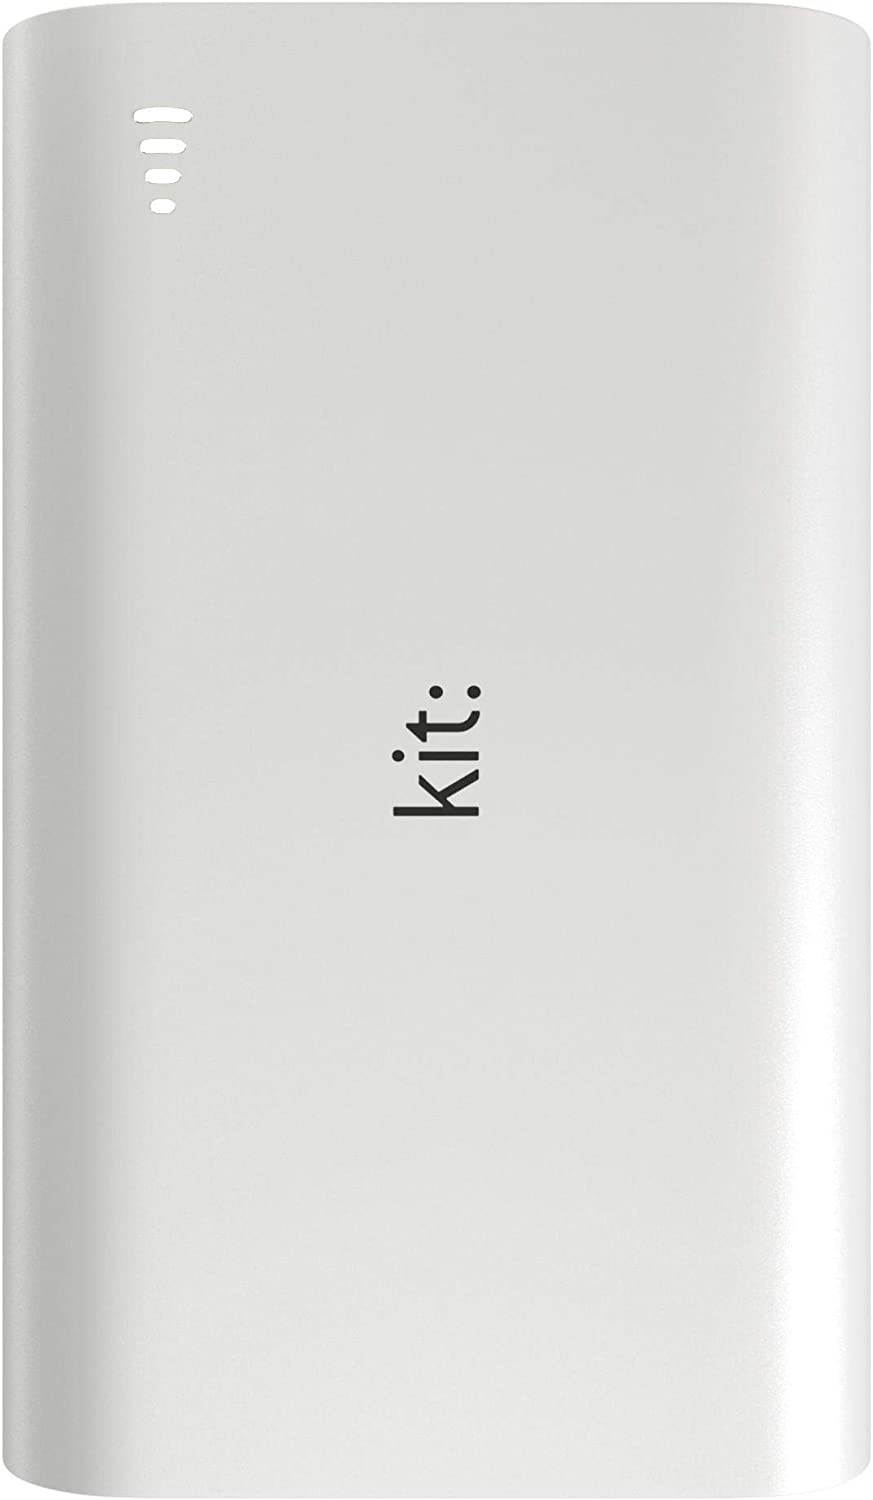 Black Samsung Google Huawei HTC and Many Others Sony High Capacity Power Bank for Smartphones and USB Devices Works with iPhone Kit Essentials Emergency Charger Power Bank 2000 mAh